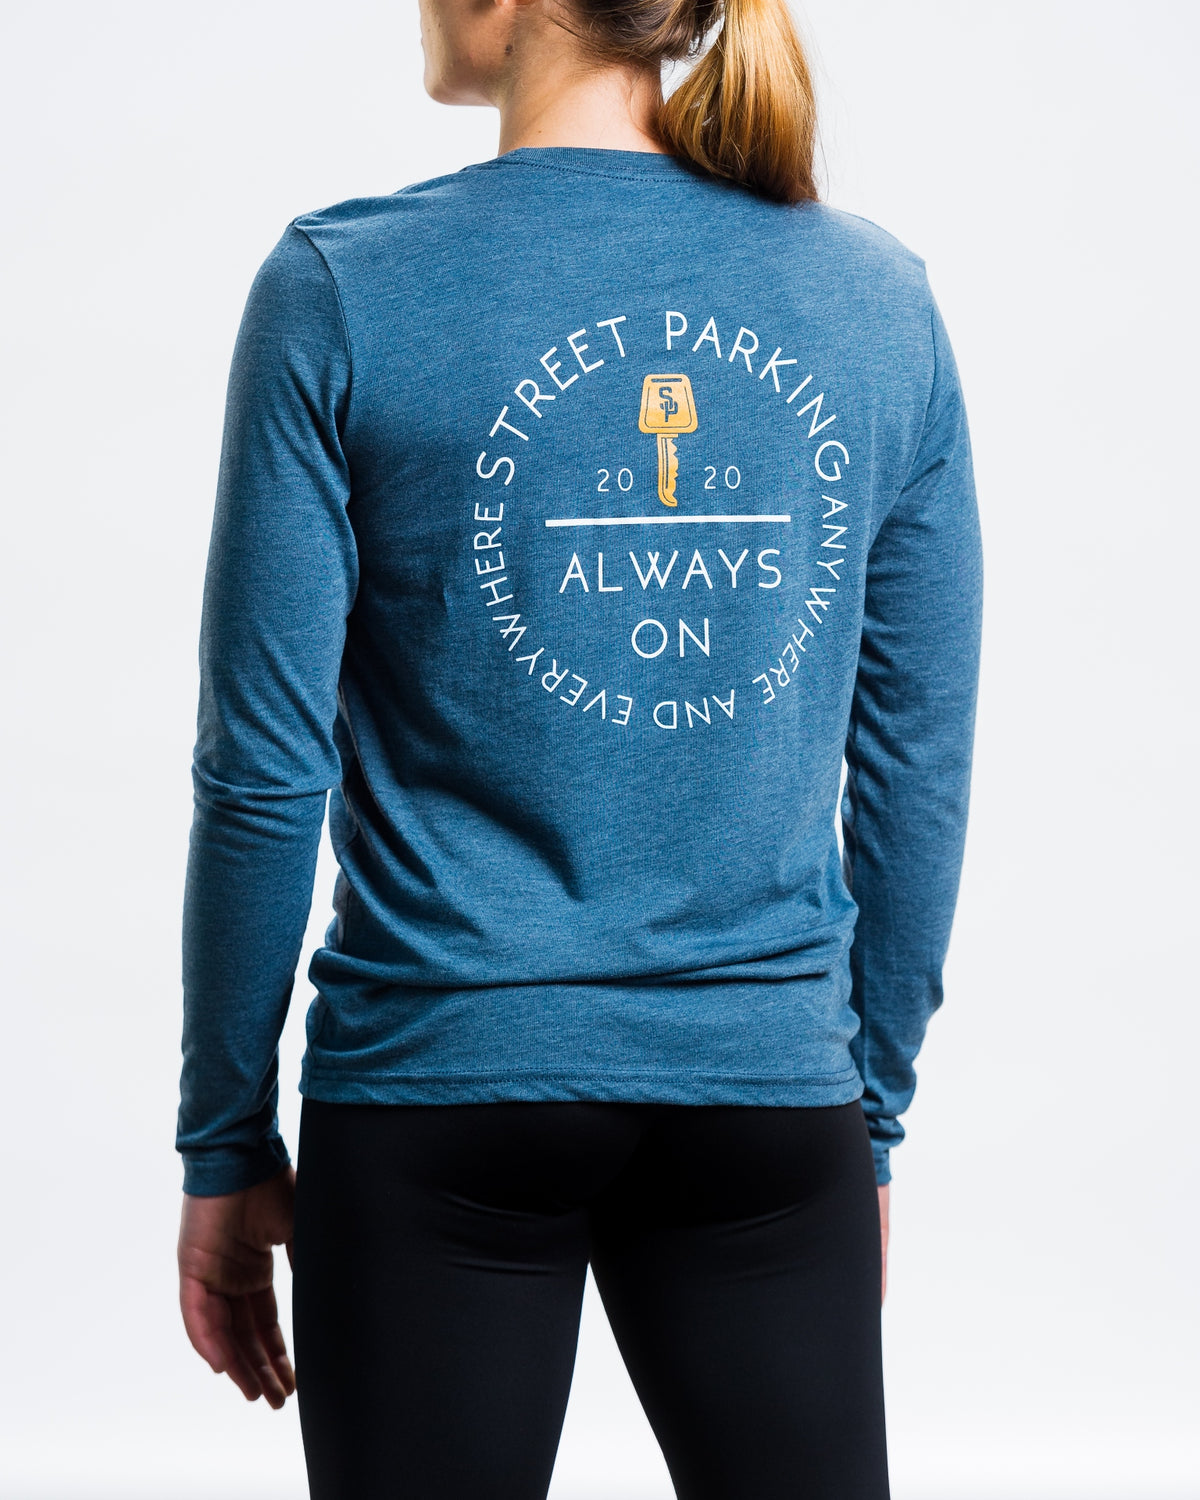 Always On 2020 Long Sleeve - Unisex - Street Parking